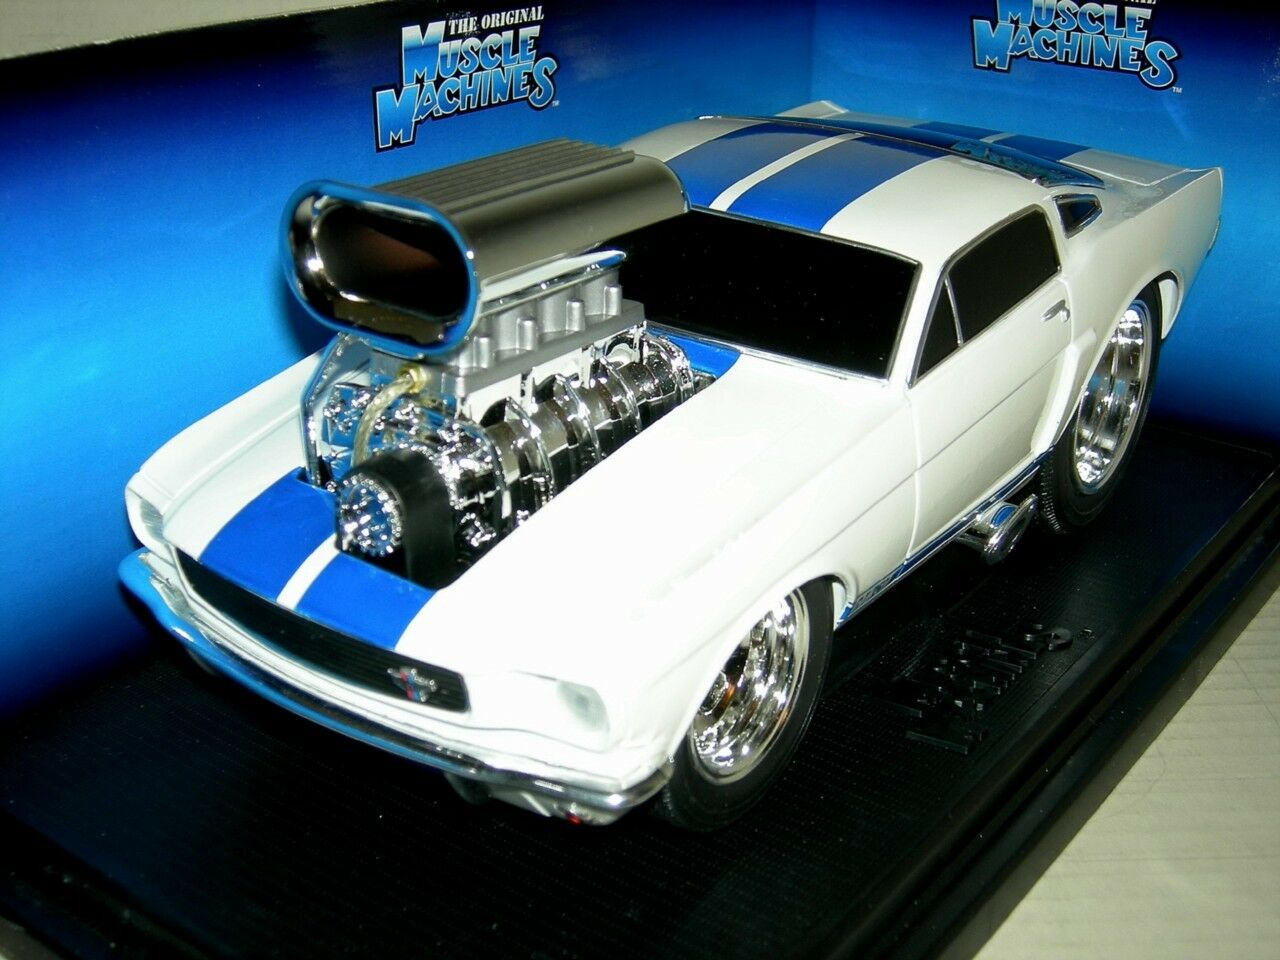 66 MUSTANG GT350 WHITE W   blueE STRIPES 2000 MUSC.MAC. MIB. 1 18 SCALE